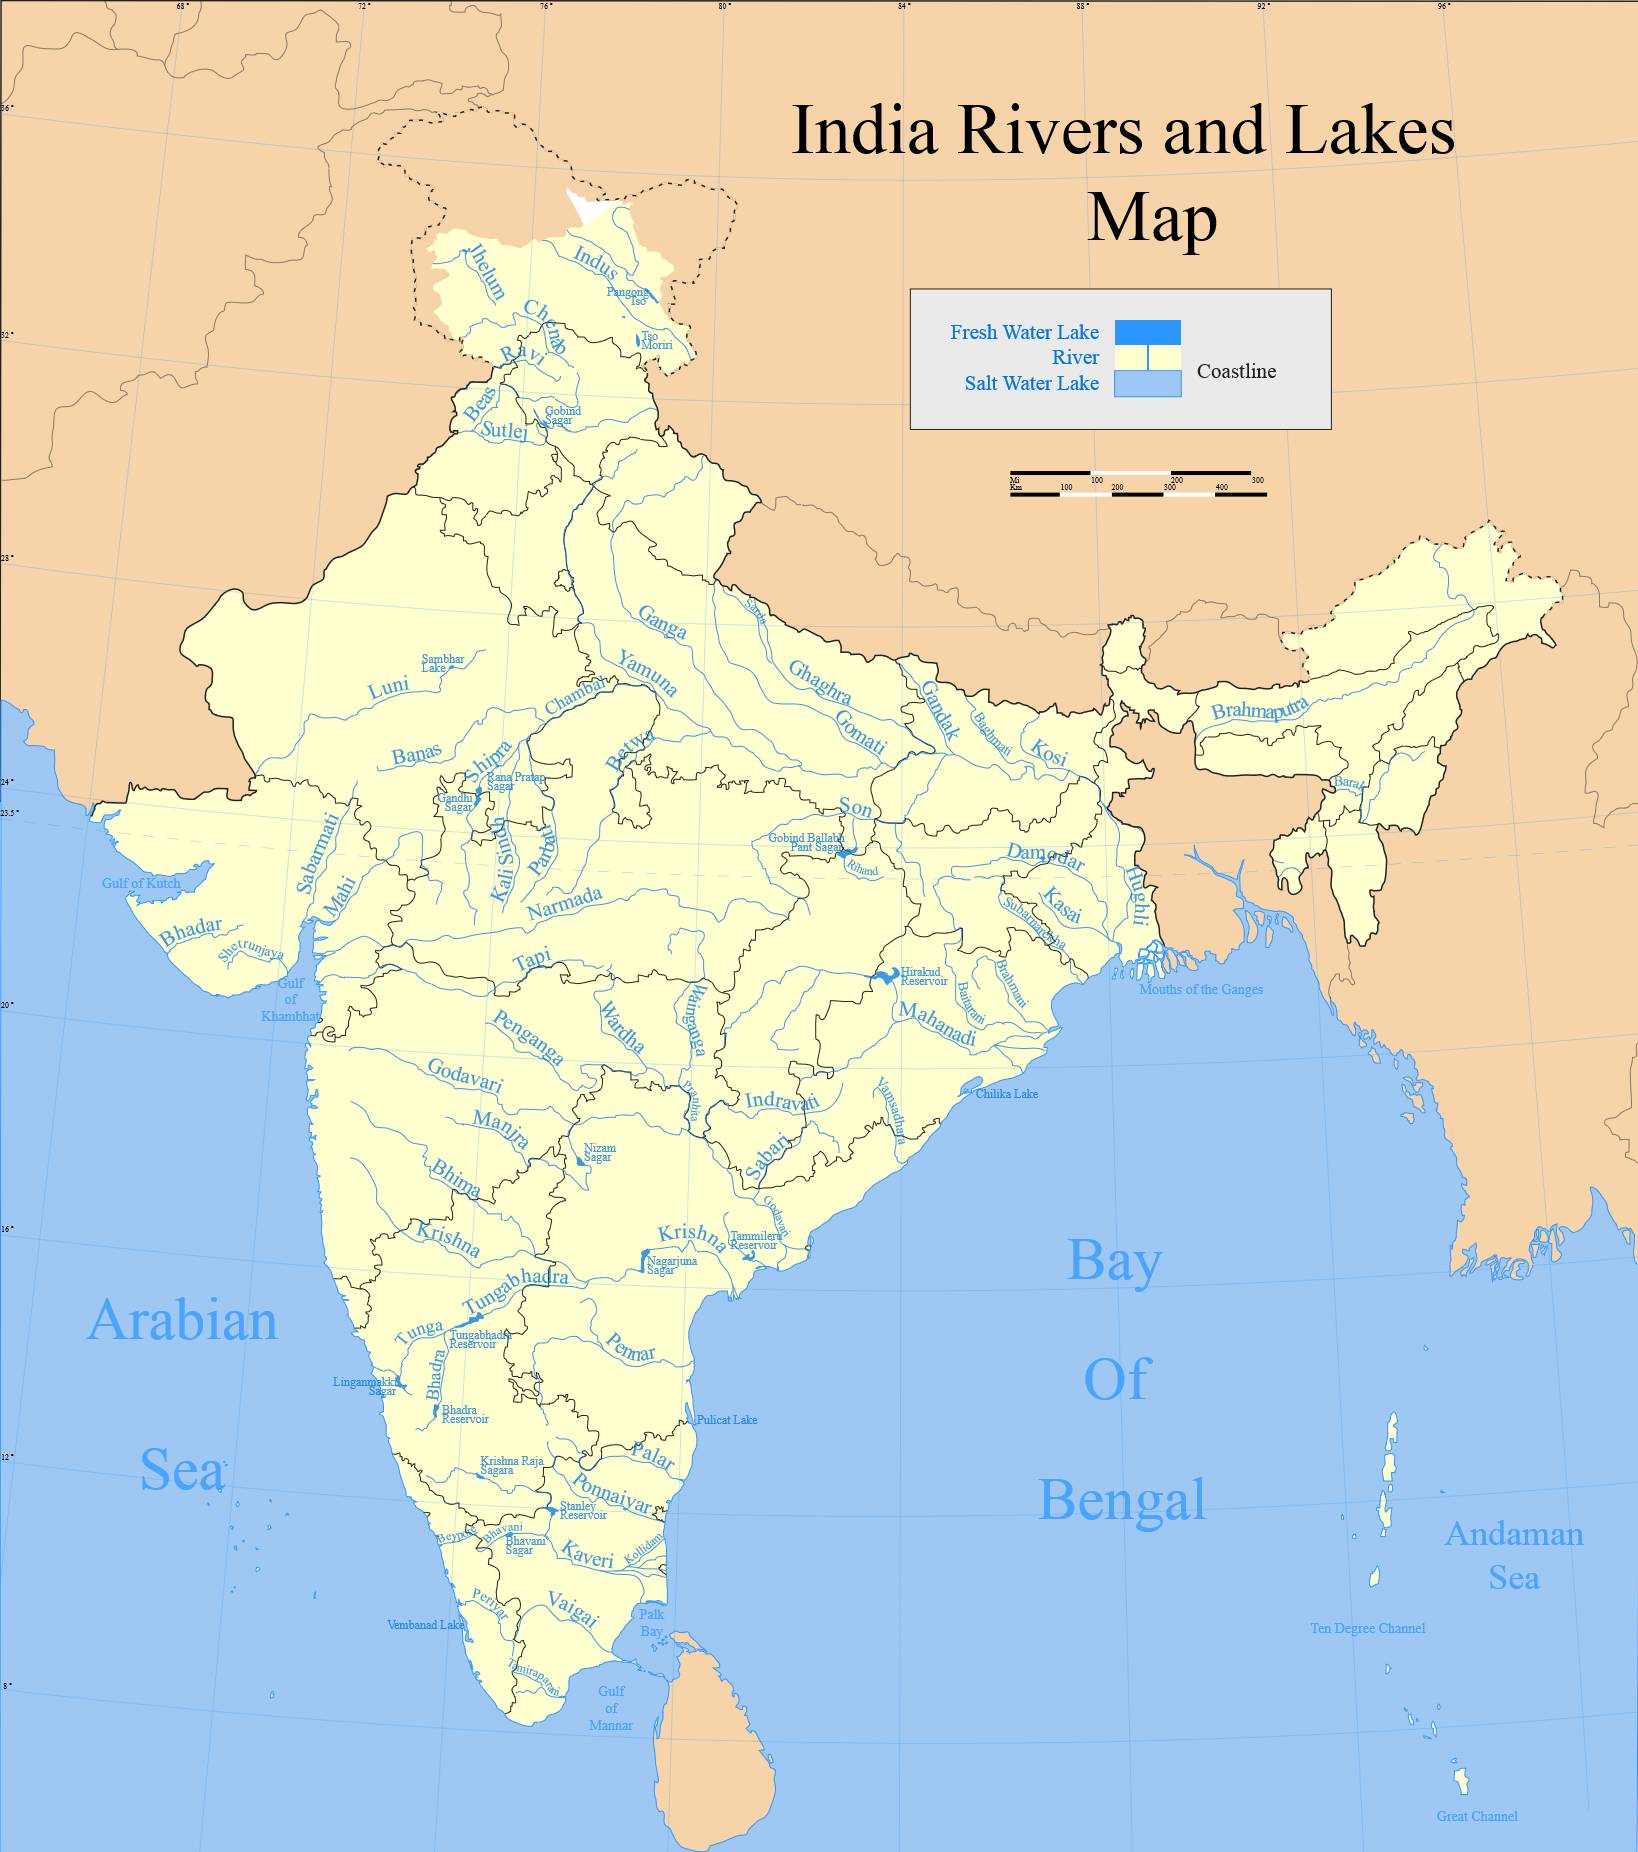 Some Major Rivers In India